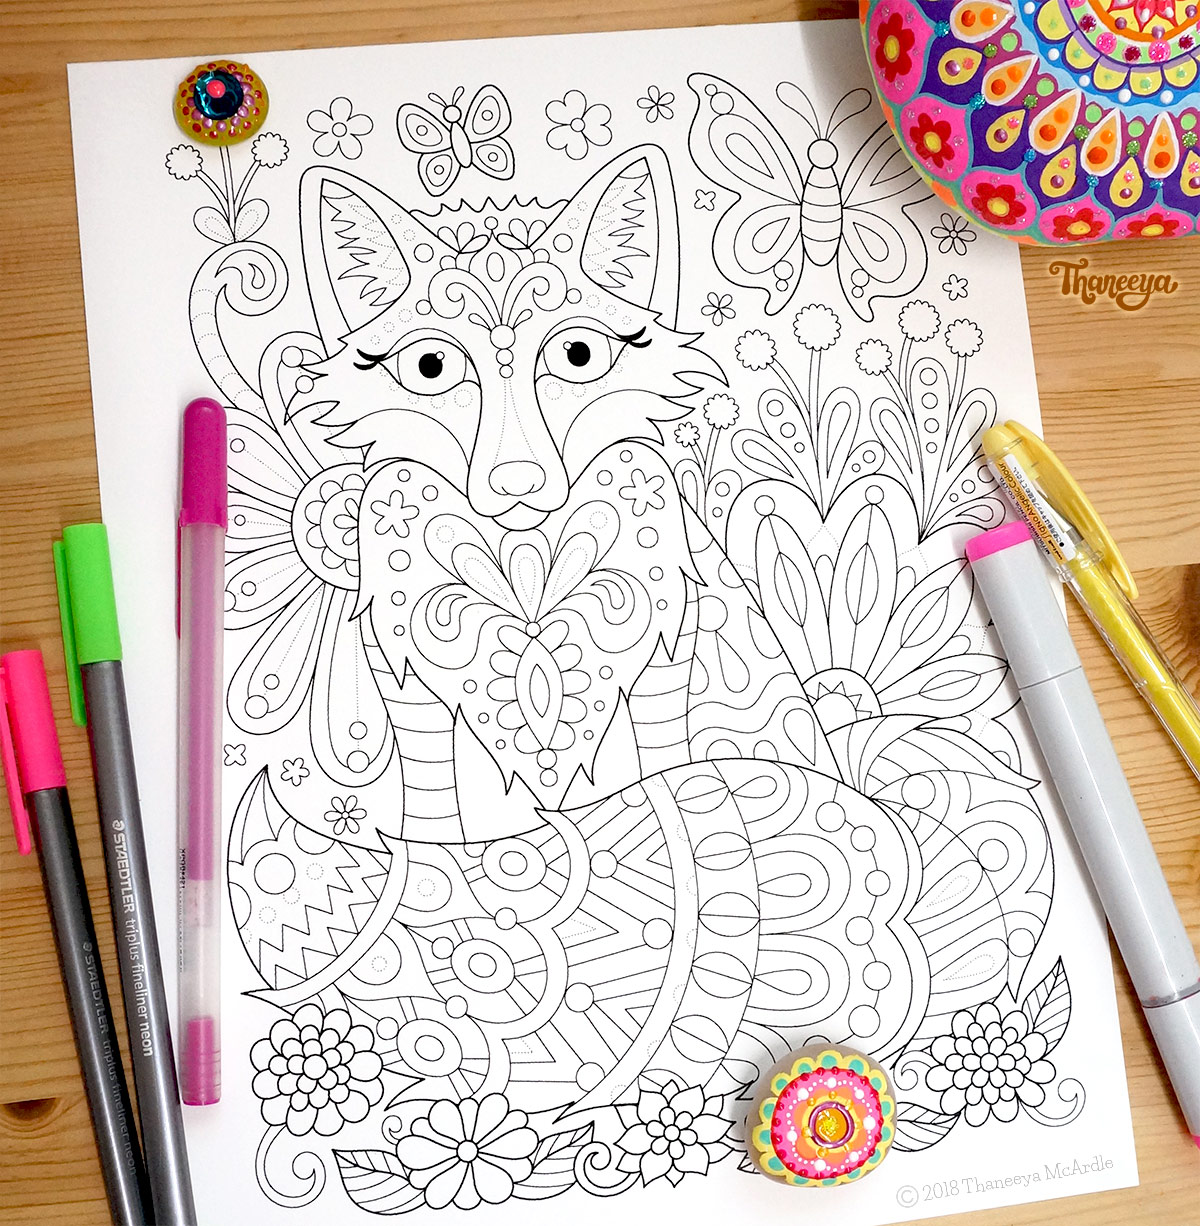 Fox coloring page by Thaneeya McArdle